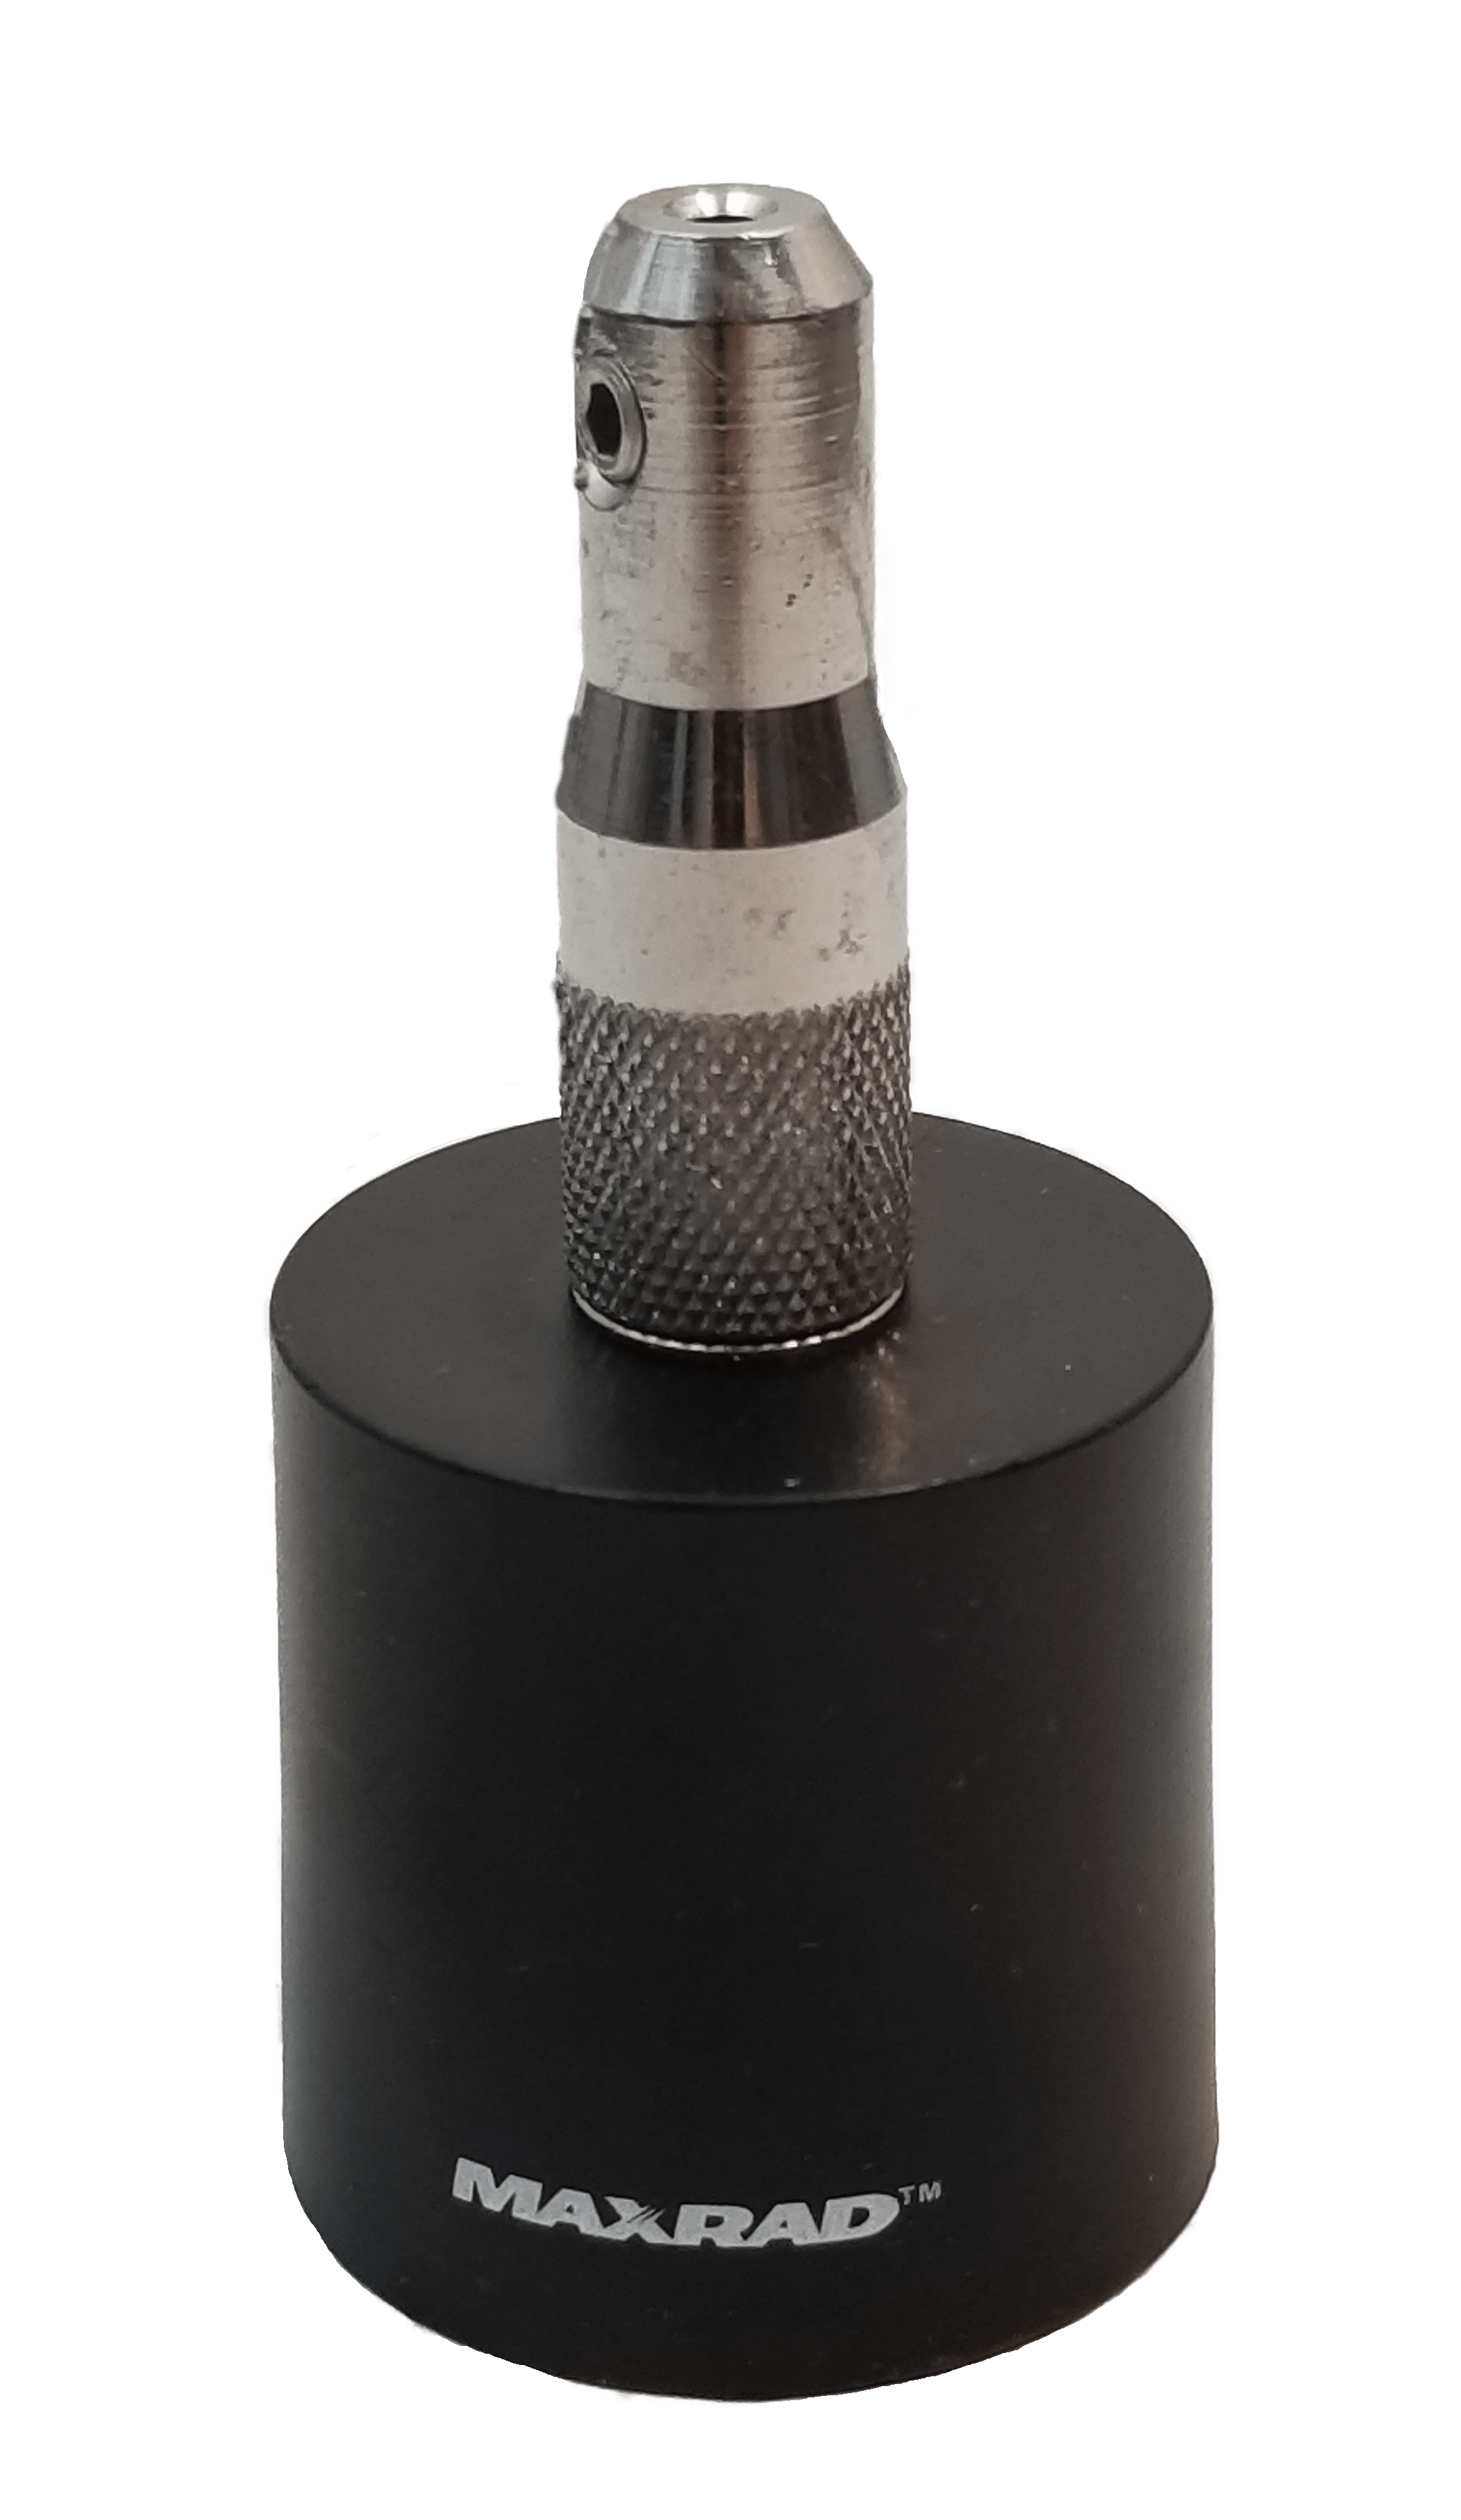 MMCO150 - 144-174Mhz Load Coil Only (Mmc150)